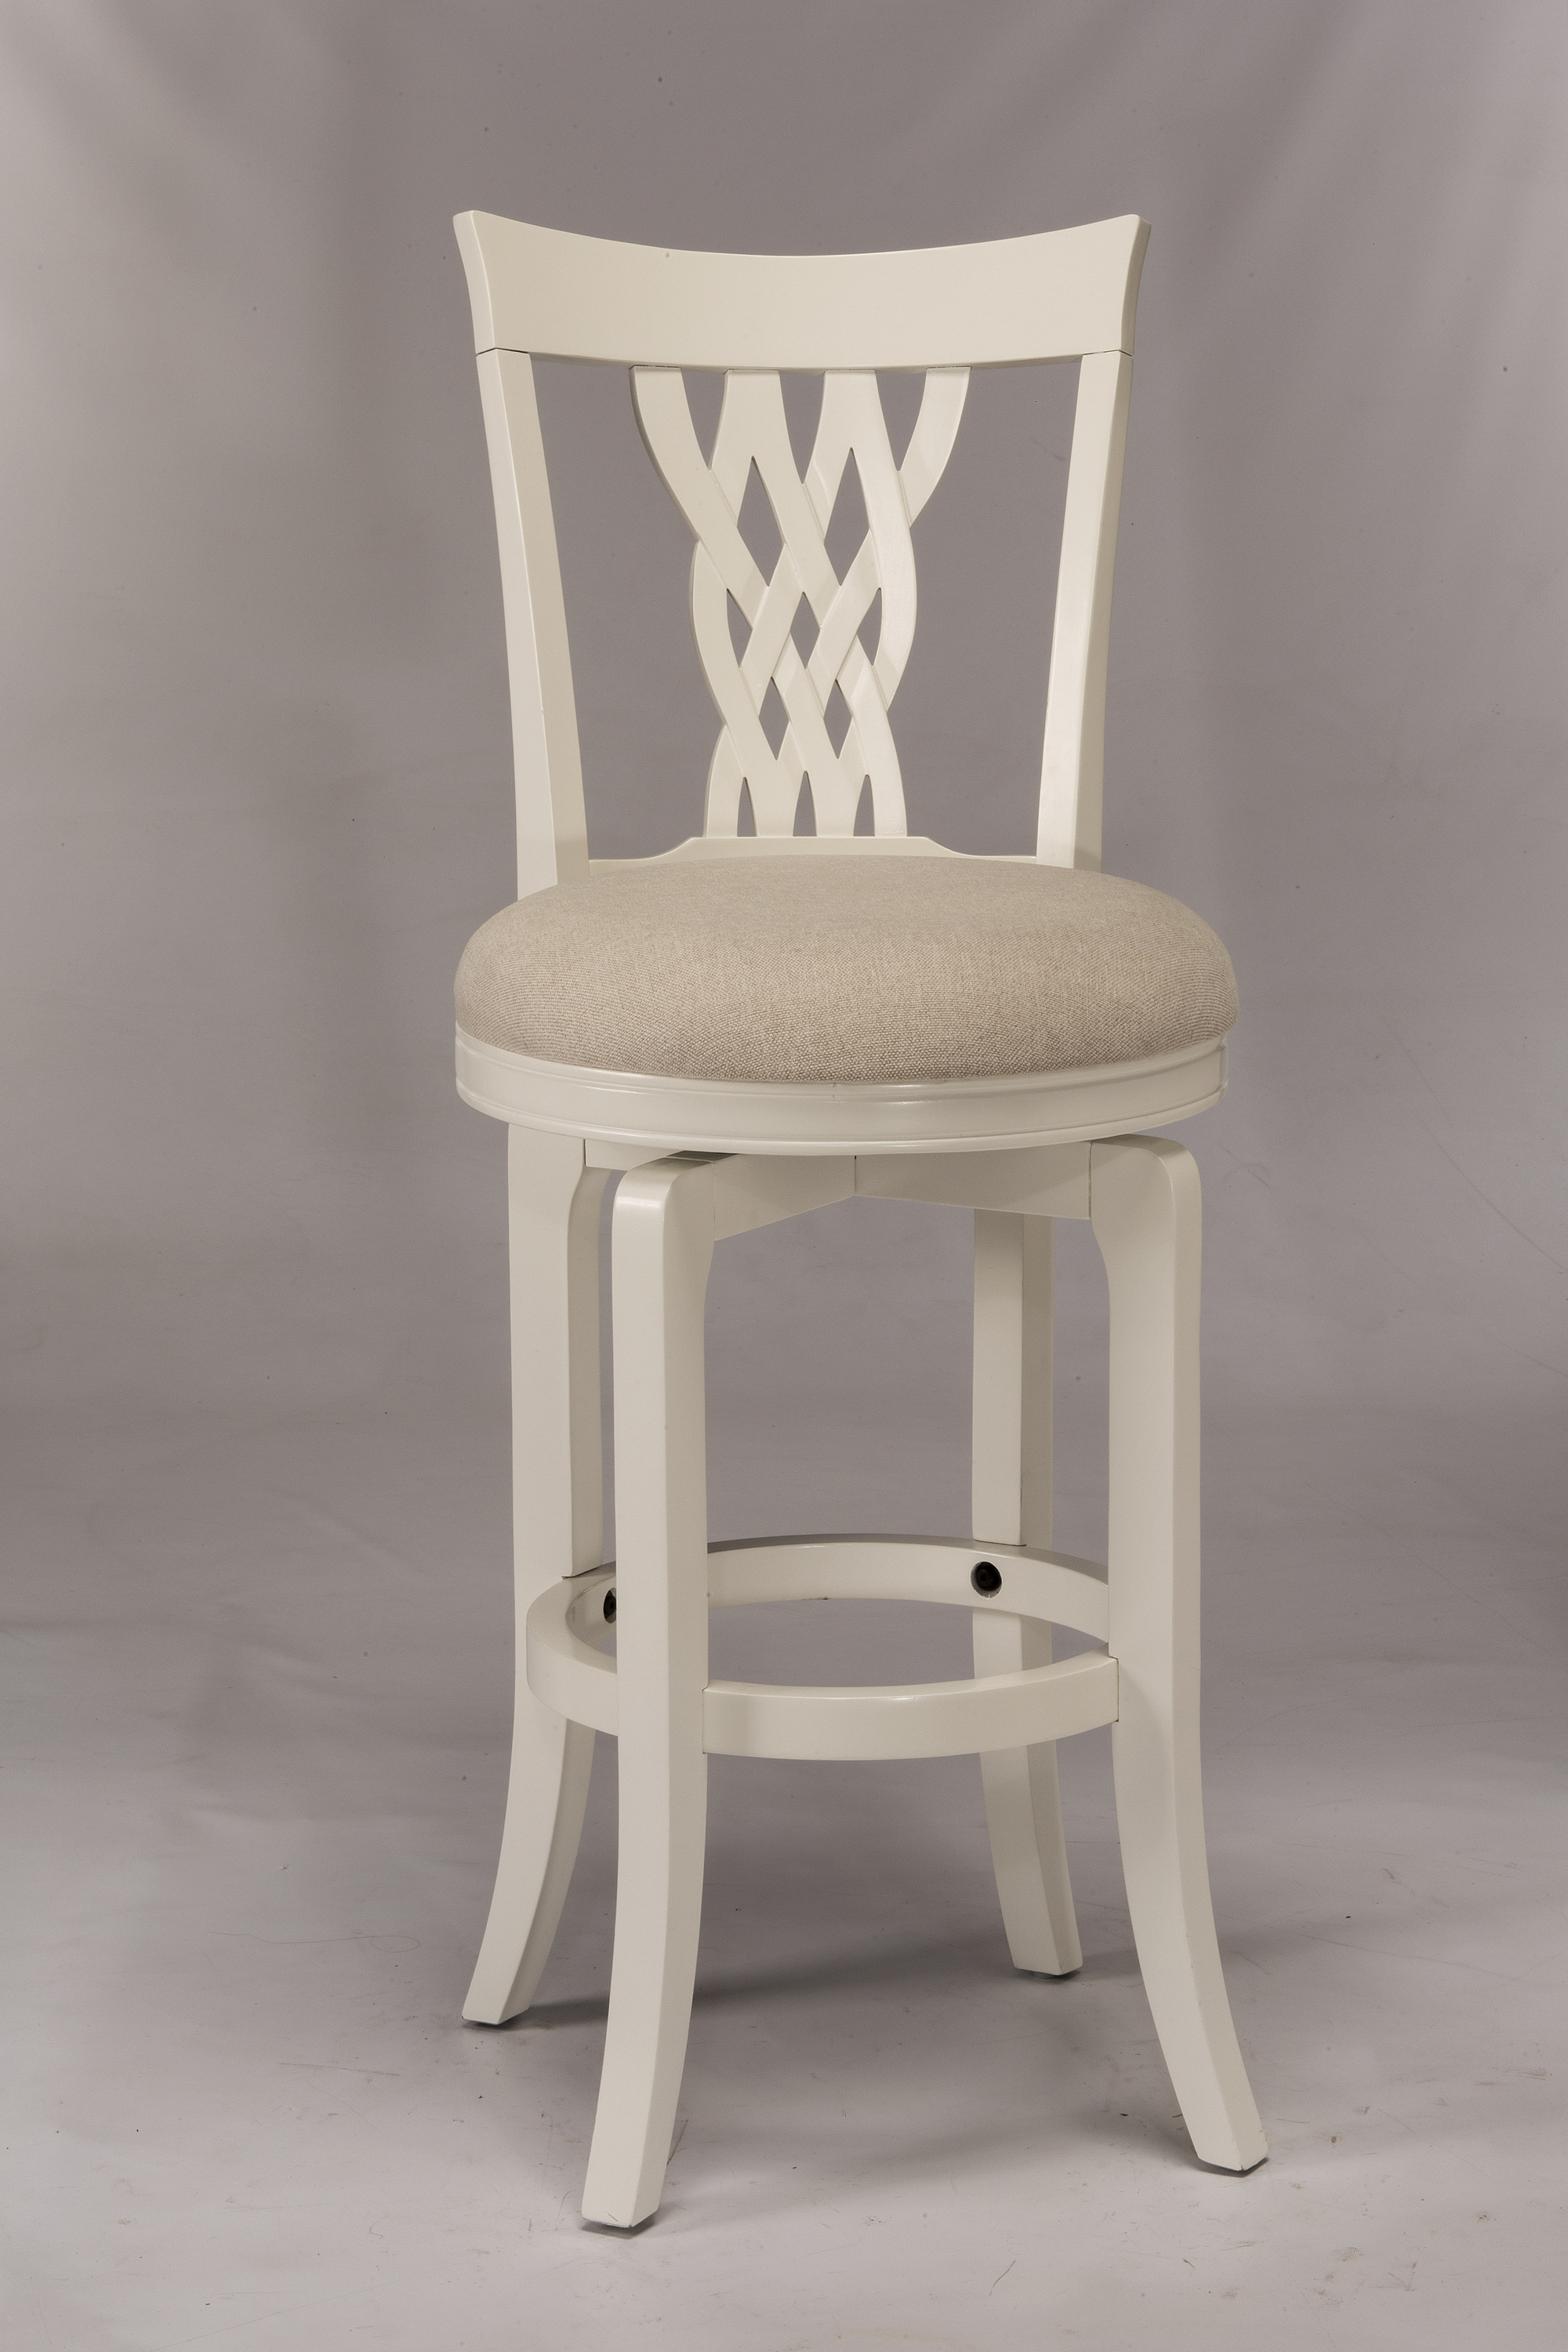 Hillsdale Wood Stools White Swiveling Counter Stool With